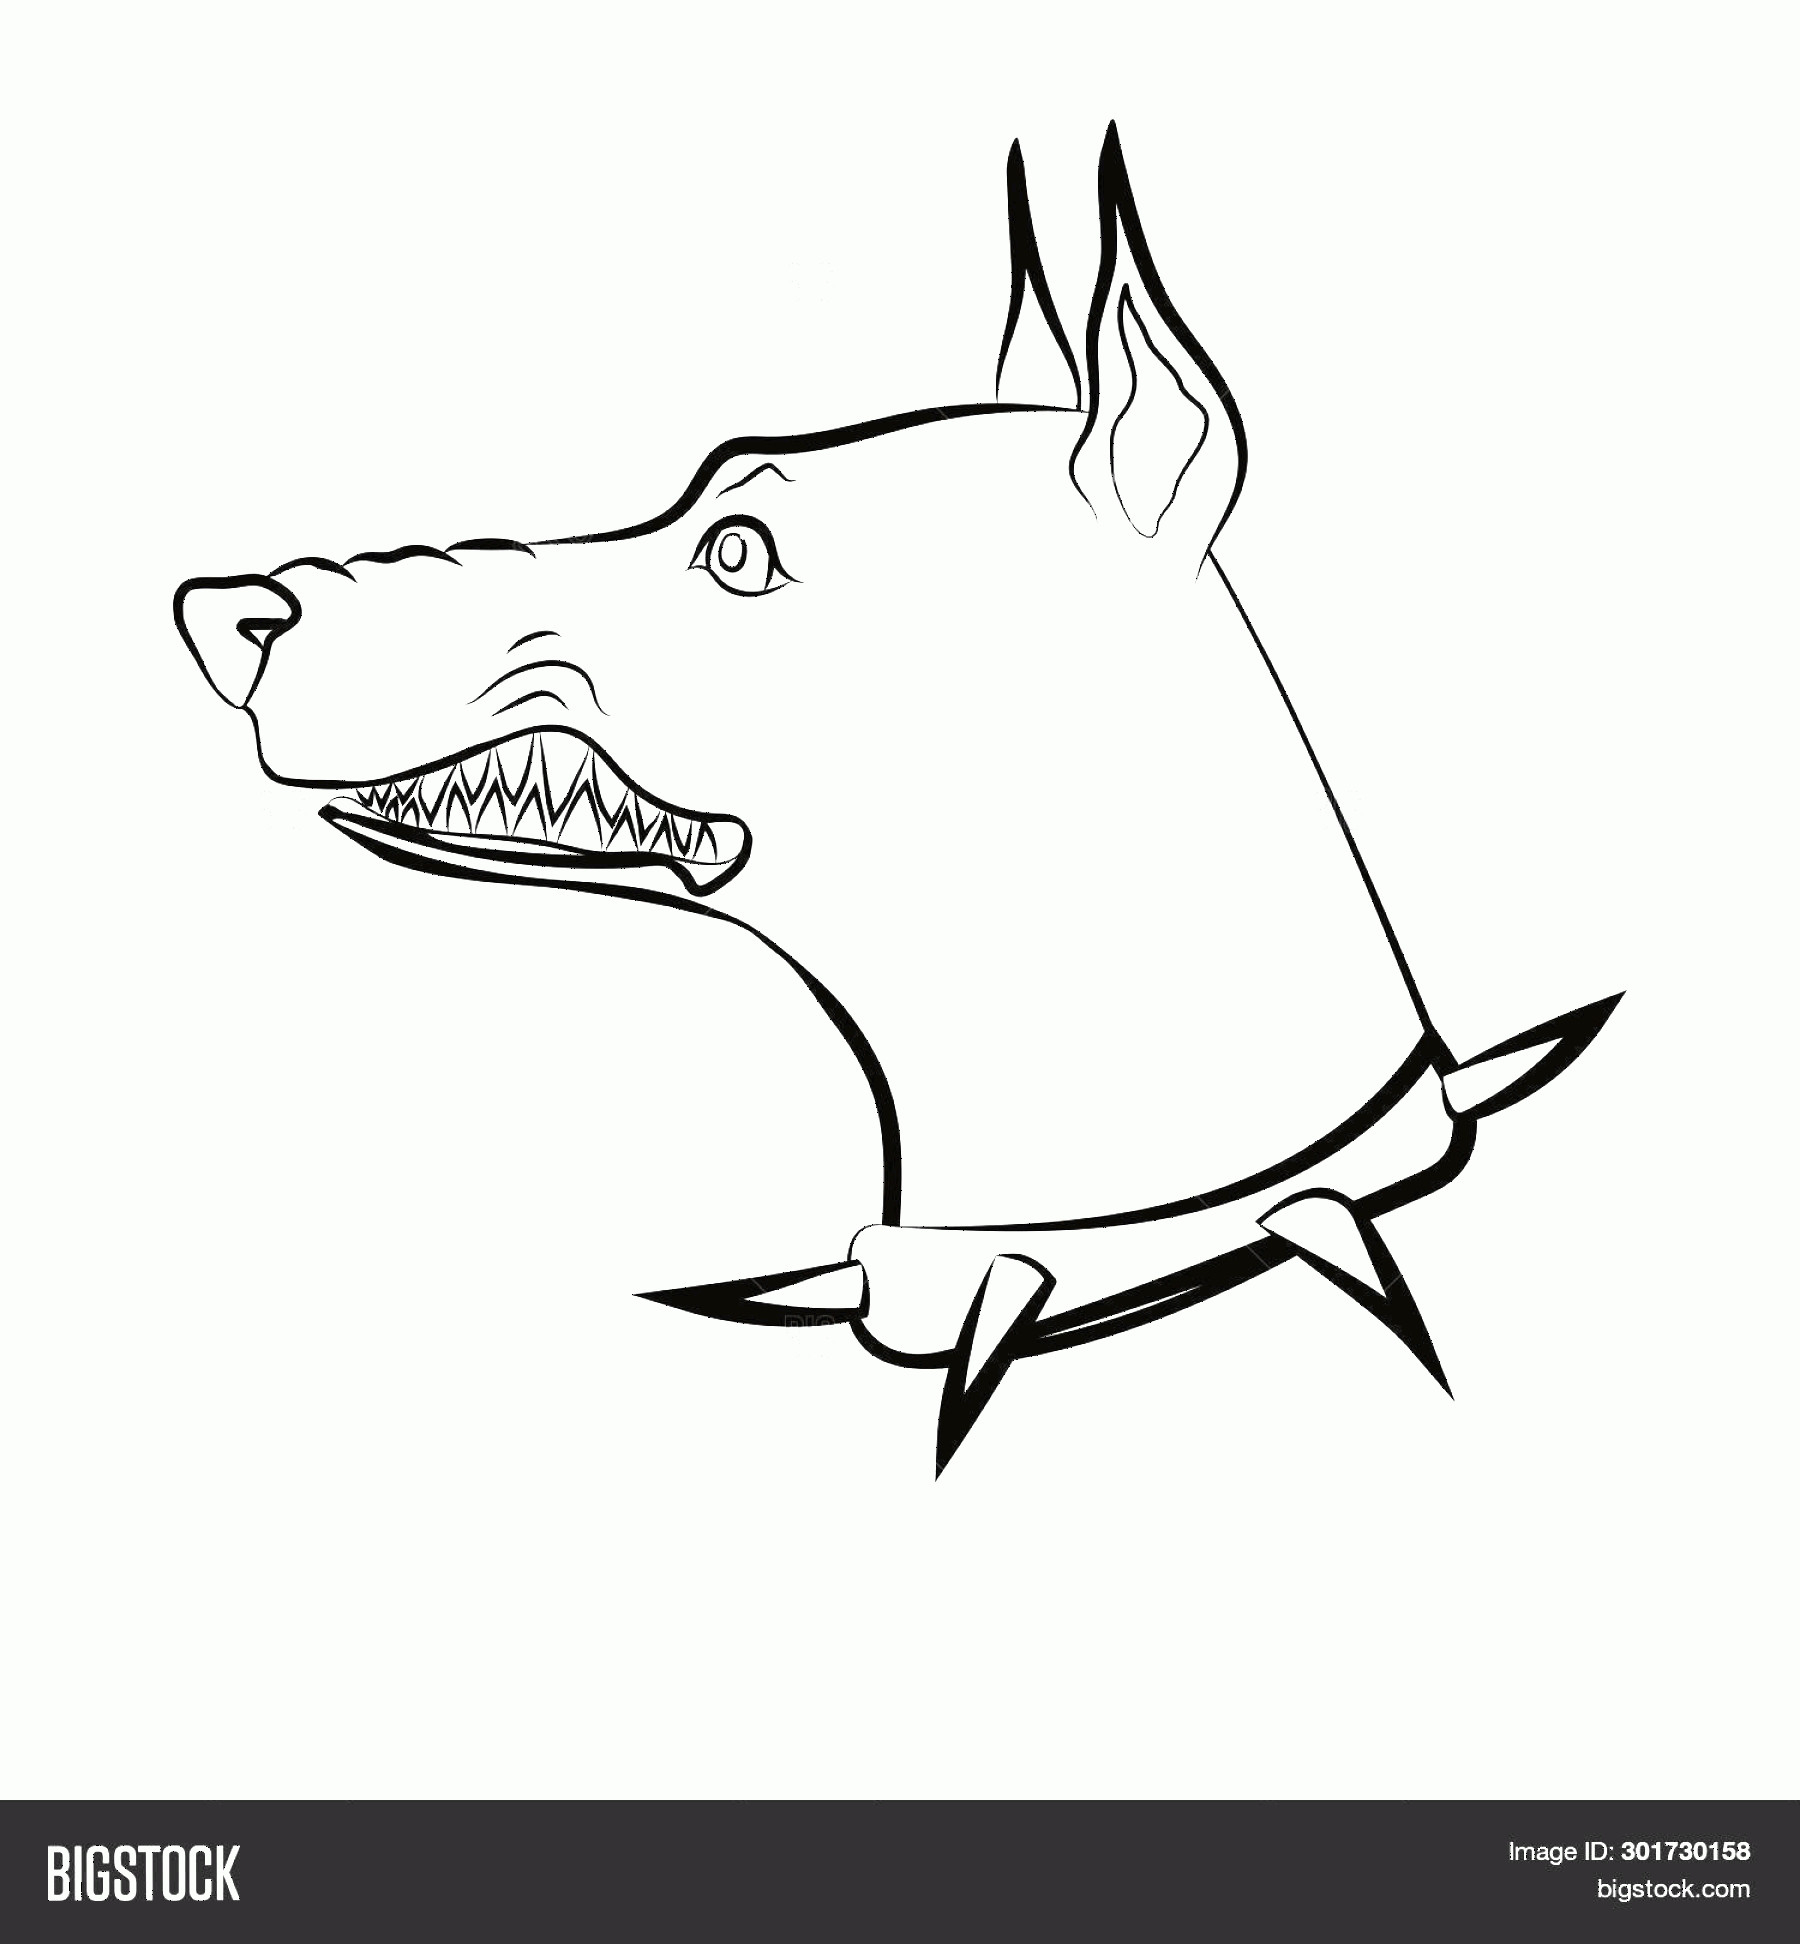 Angry Dog Vector Black And White: Stock Vector Angry Dog Doberman With Grin Dog With Spike Collar Vector Linear Drawing